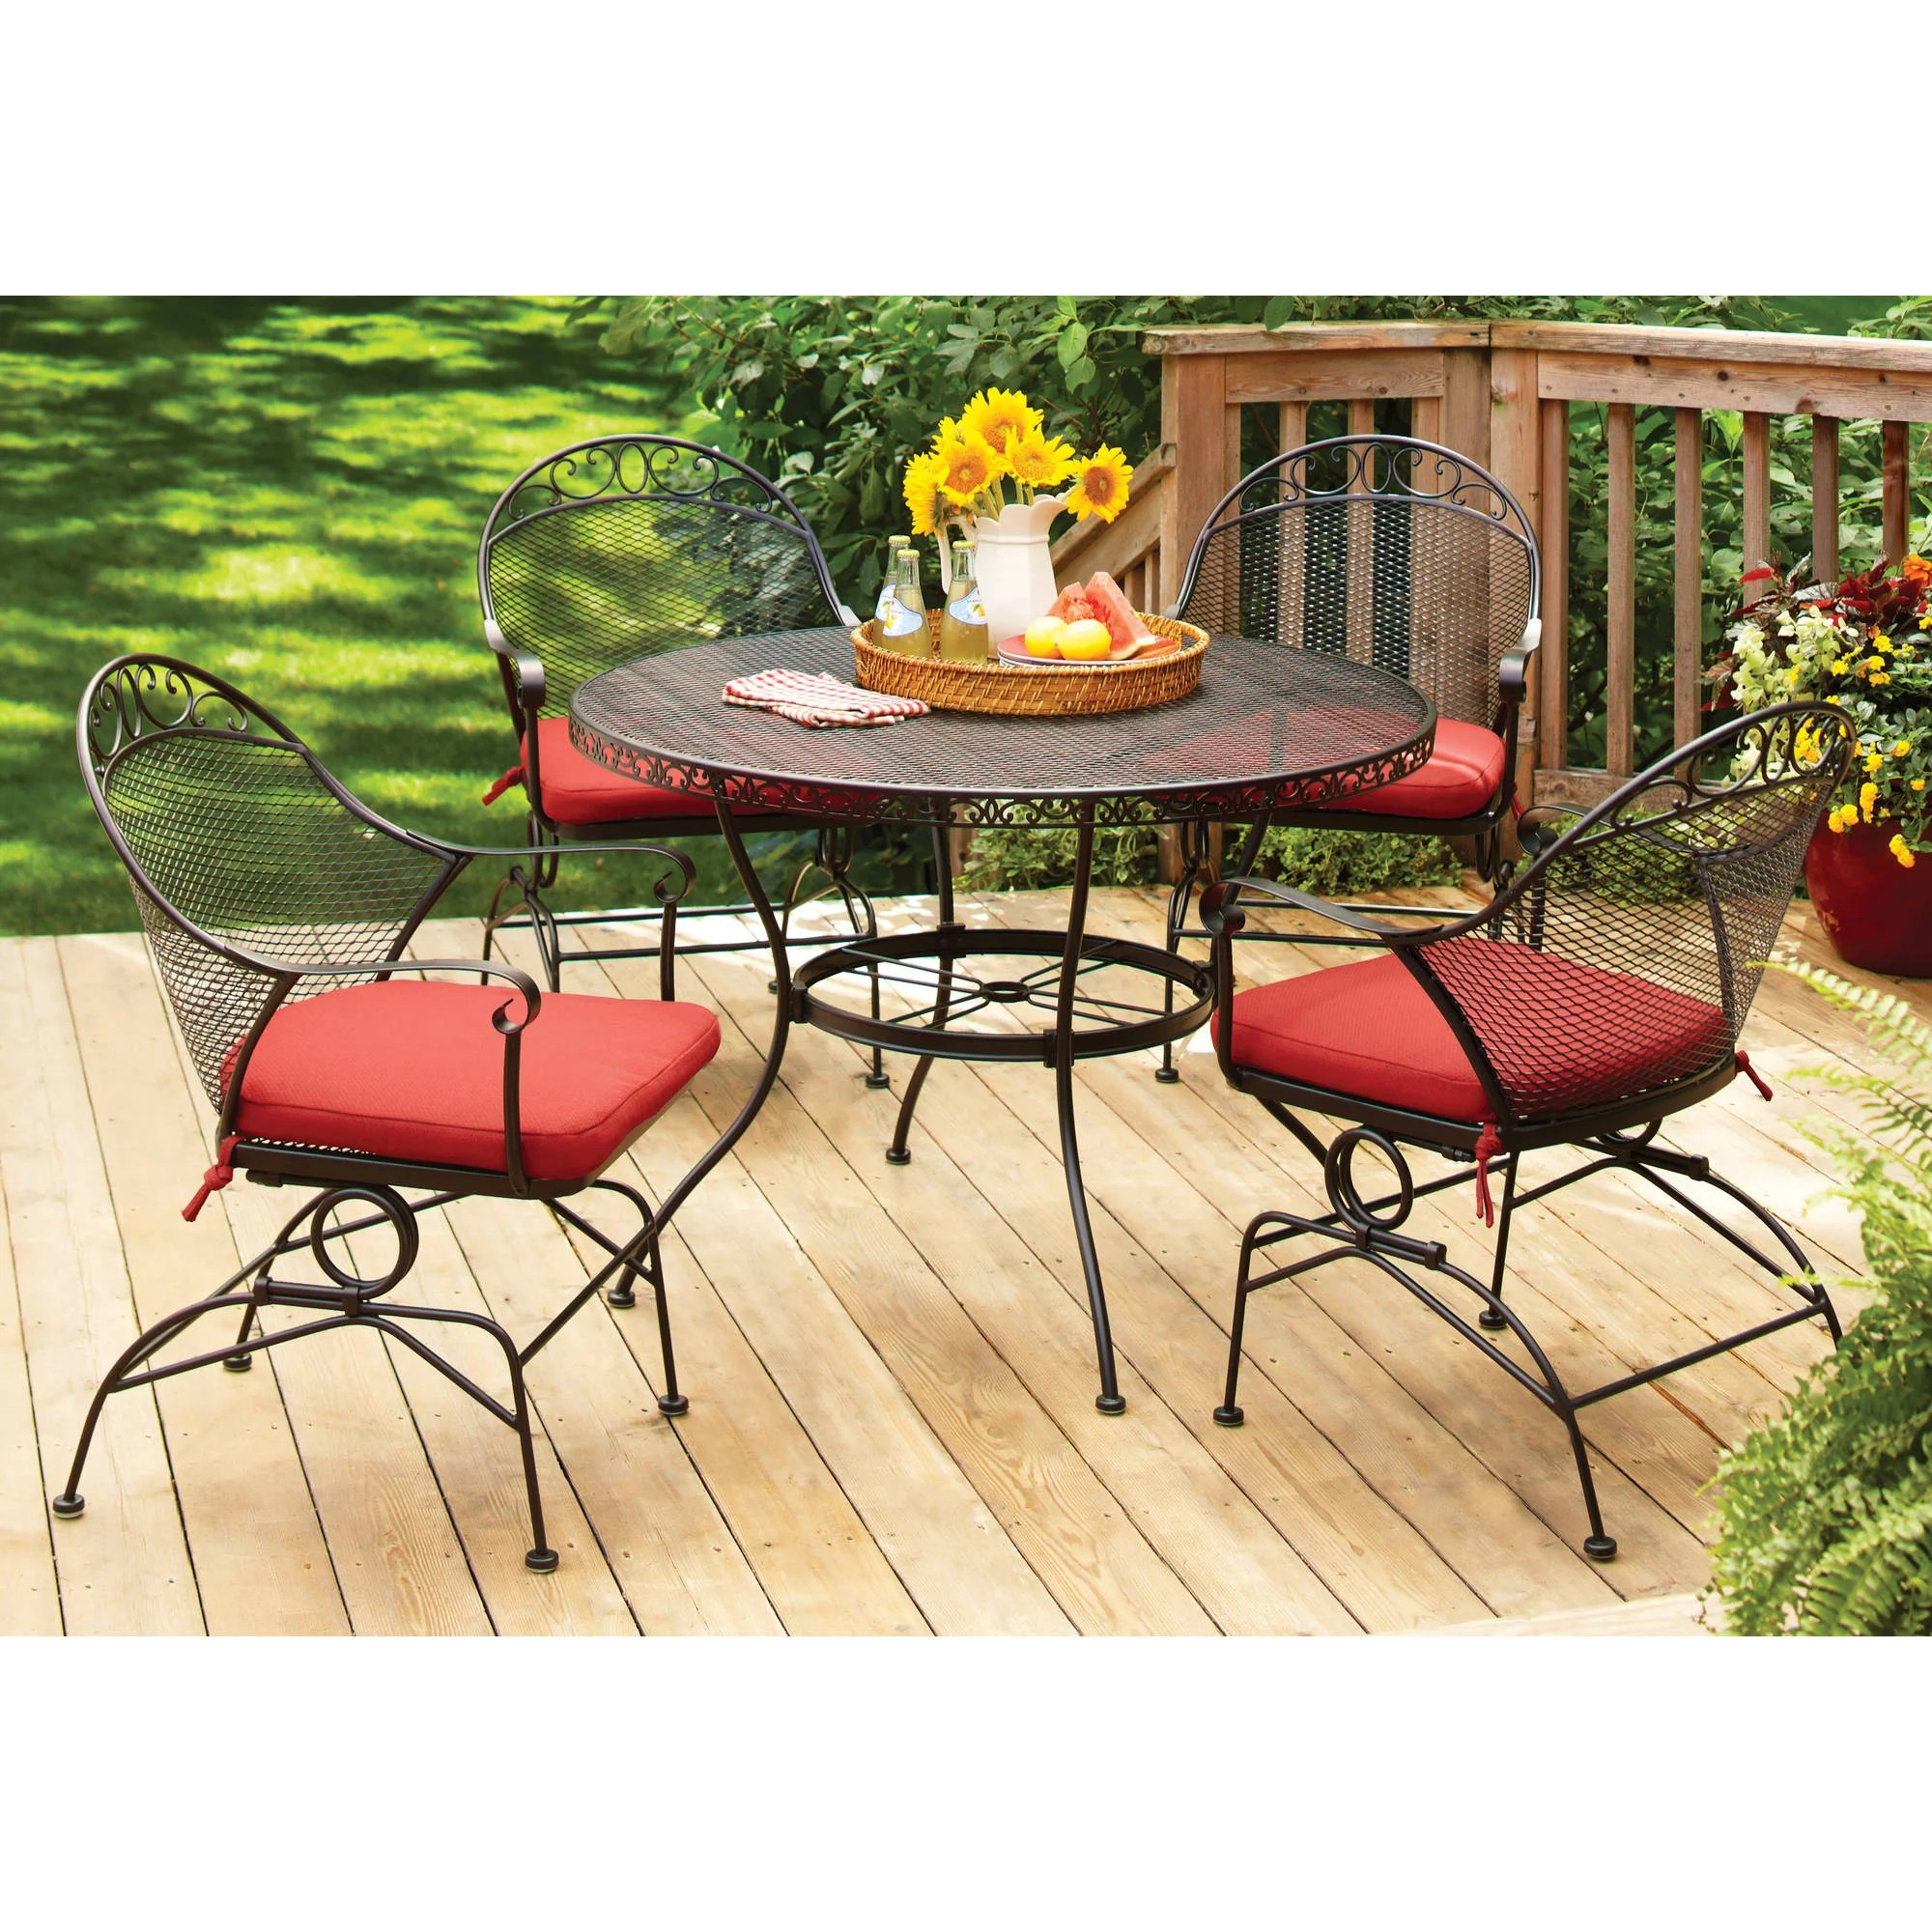 better homes and gardens wrought iron patio dining set clayton court cushioned 5 piece red walmart com